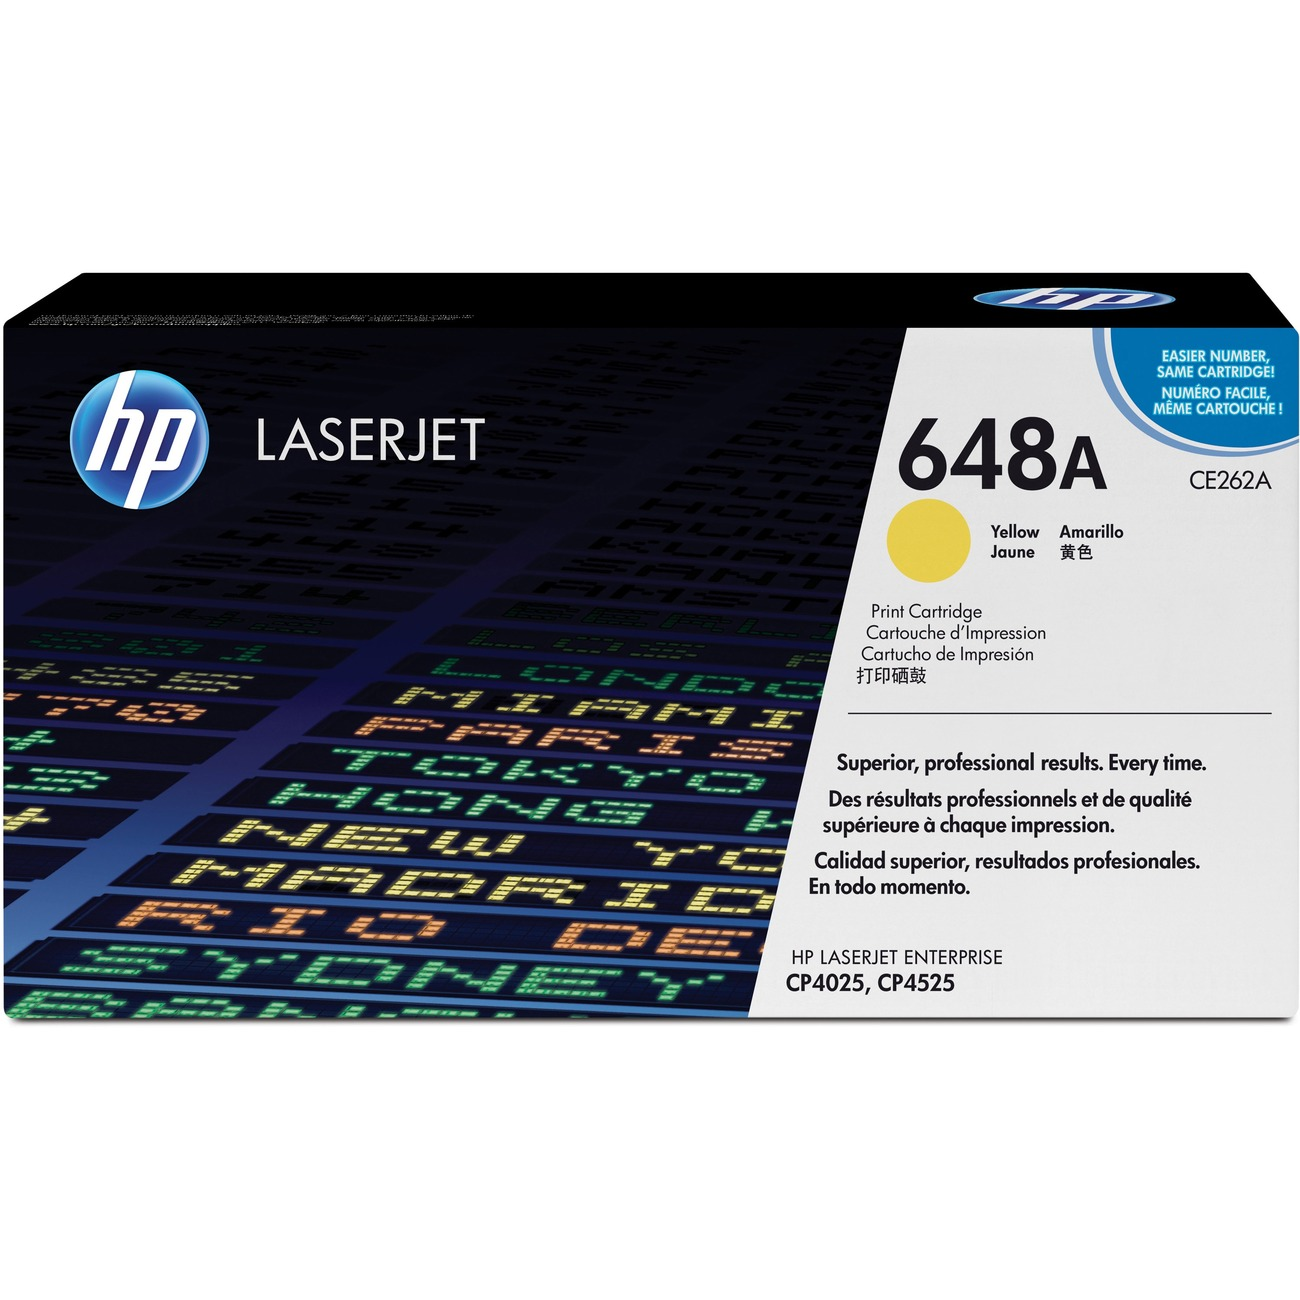 HP 648A Yellow Toner Original Cartridge Laser For LaserJet CP4025 CP4525 CE262A